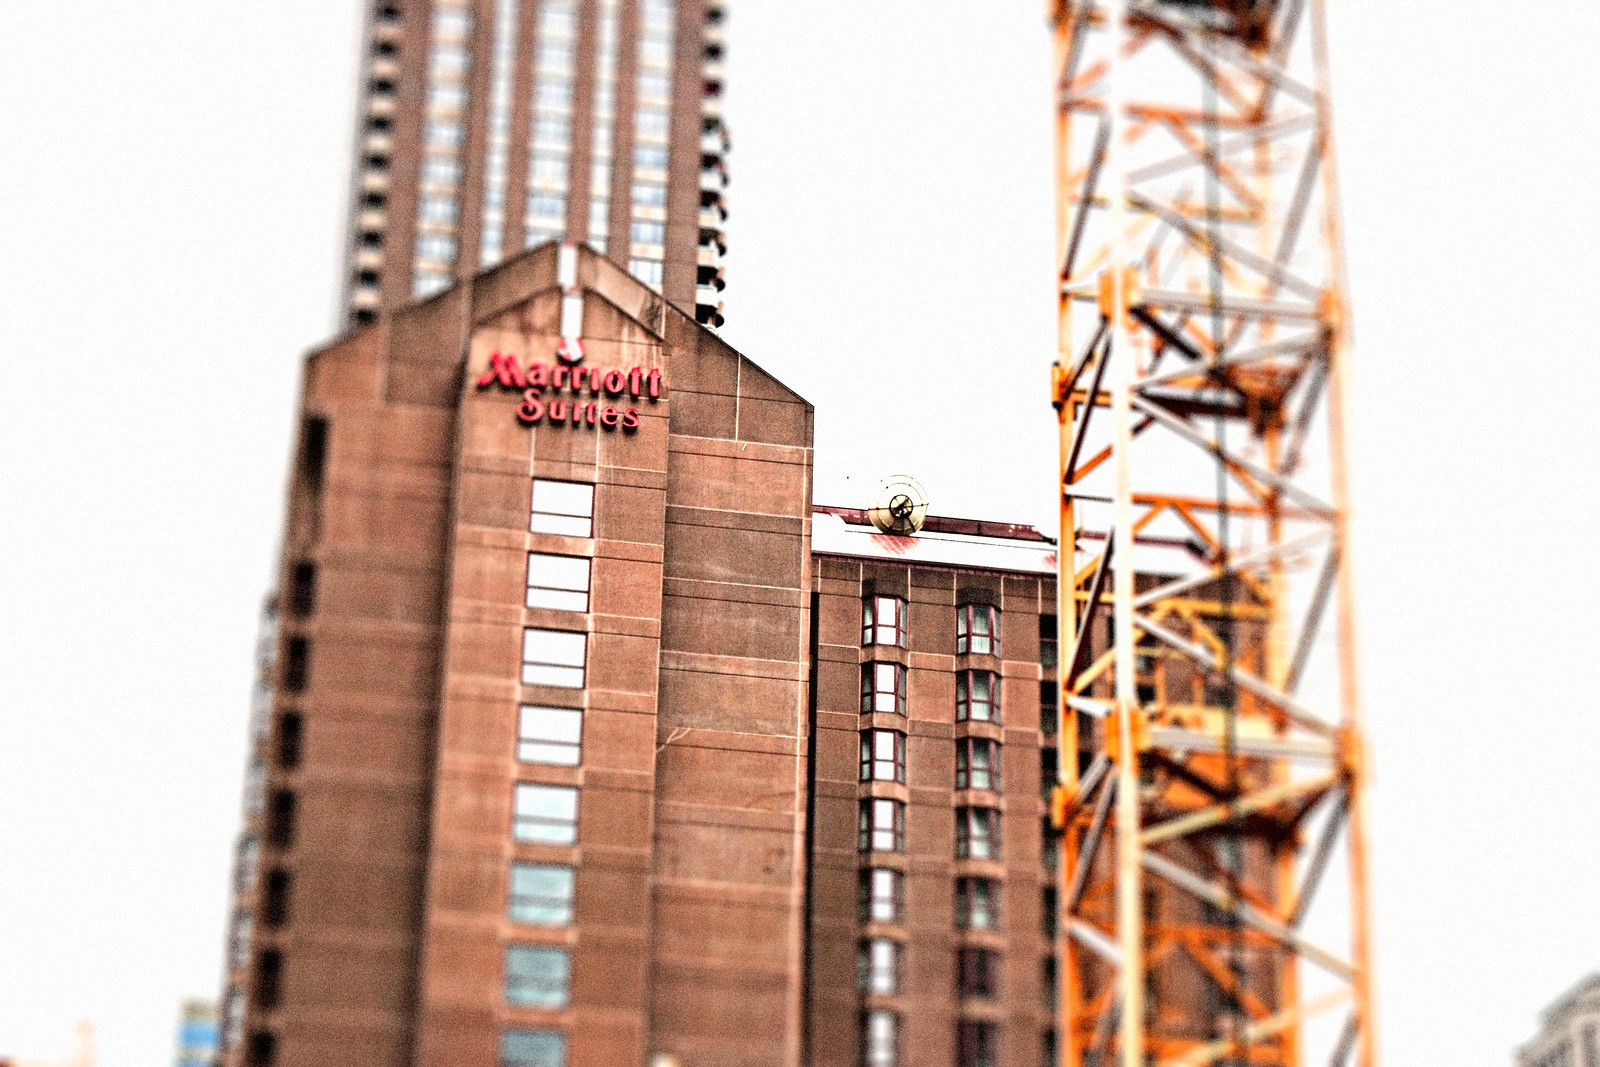 Marriott Suites, Midtown, December 2015